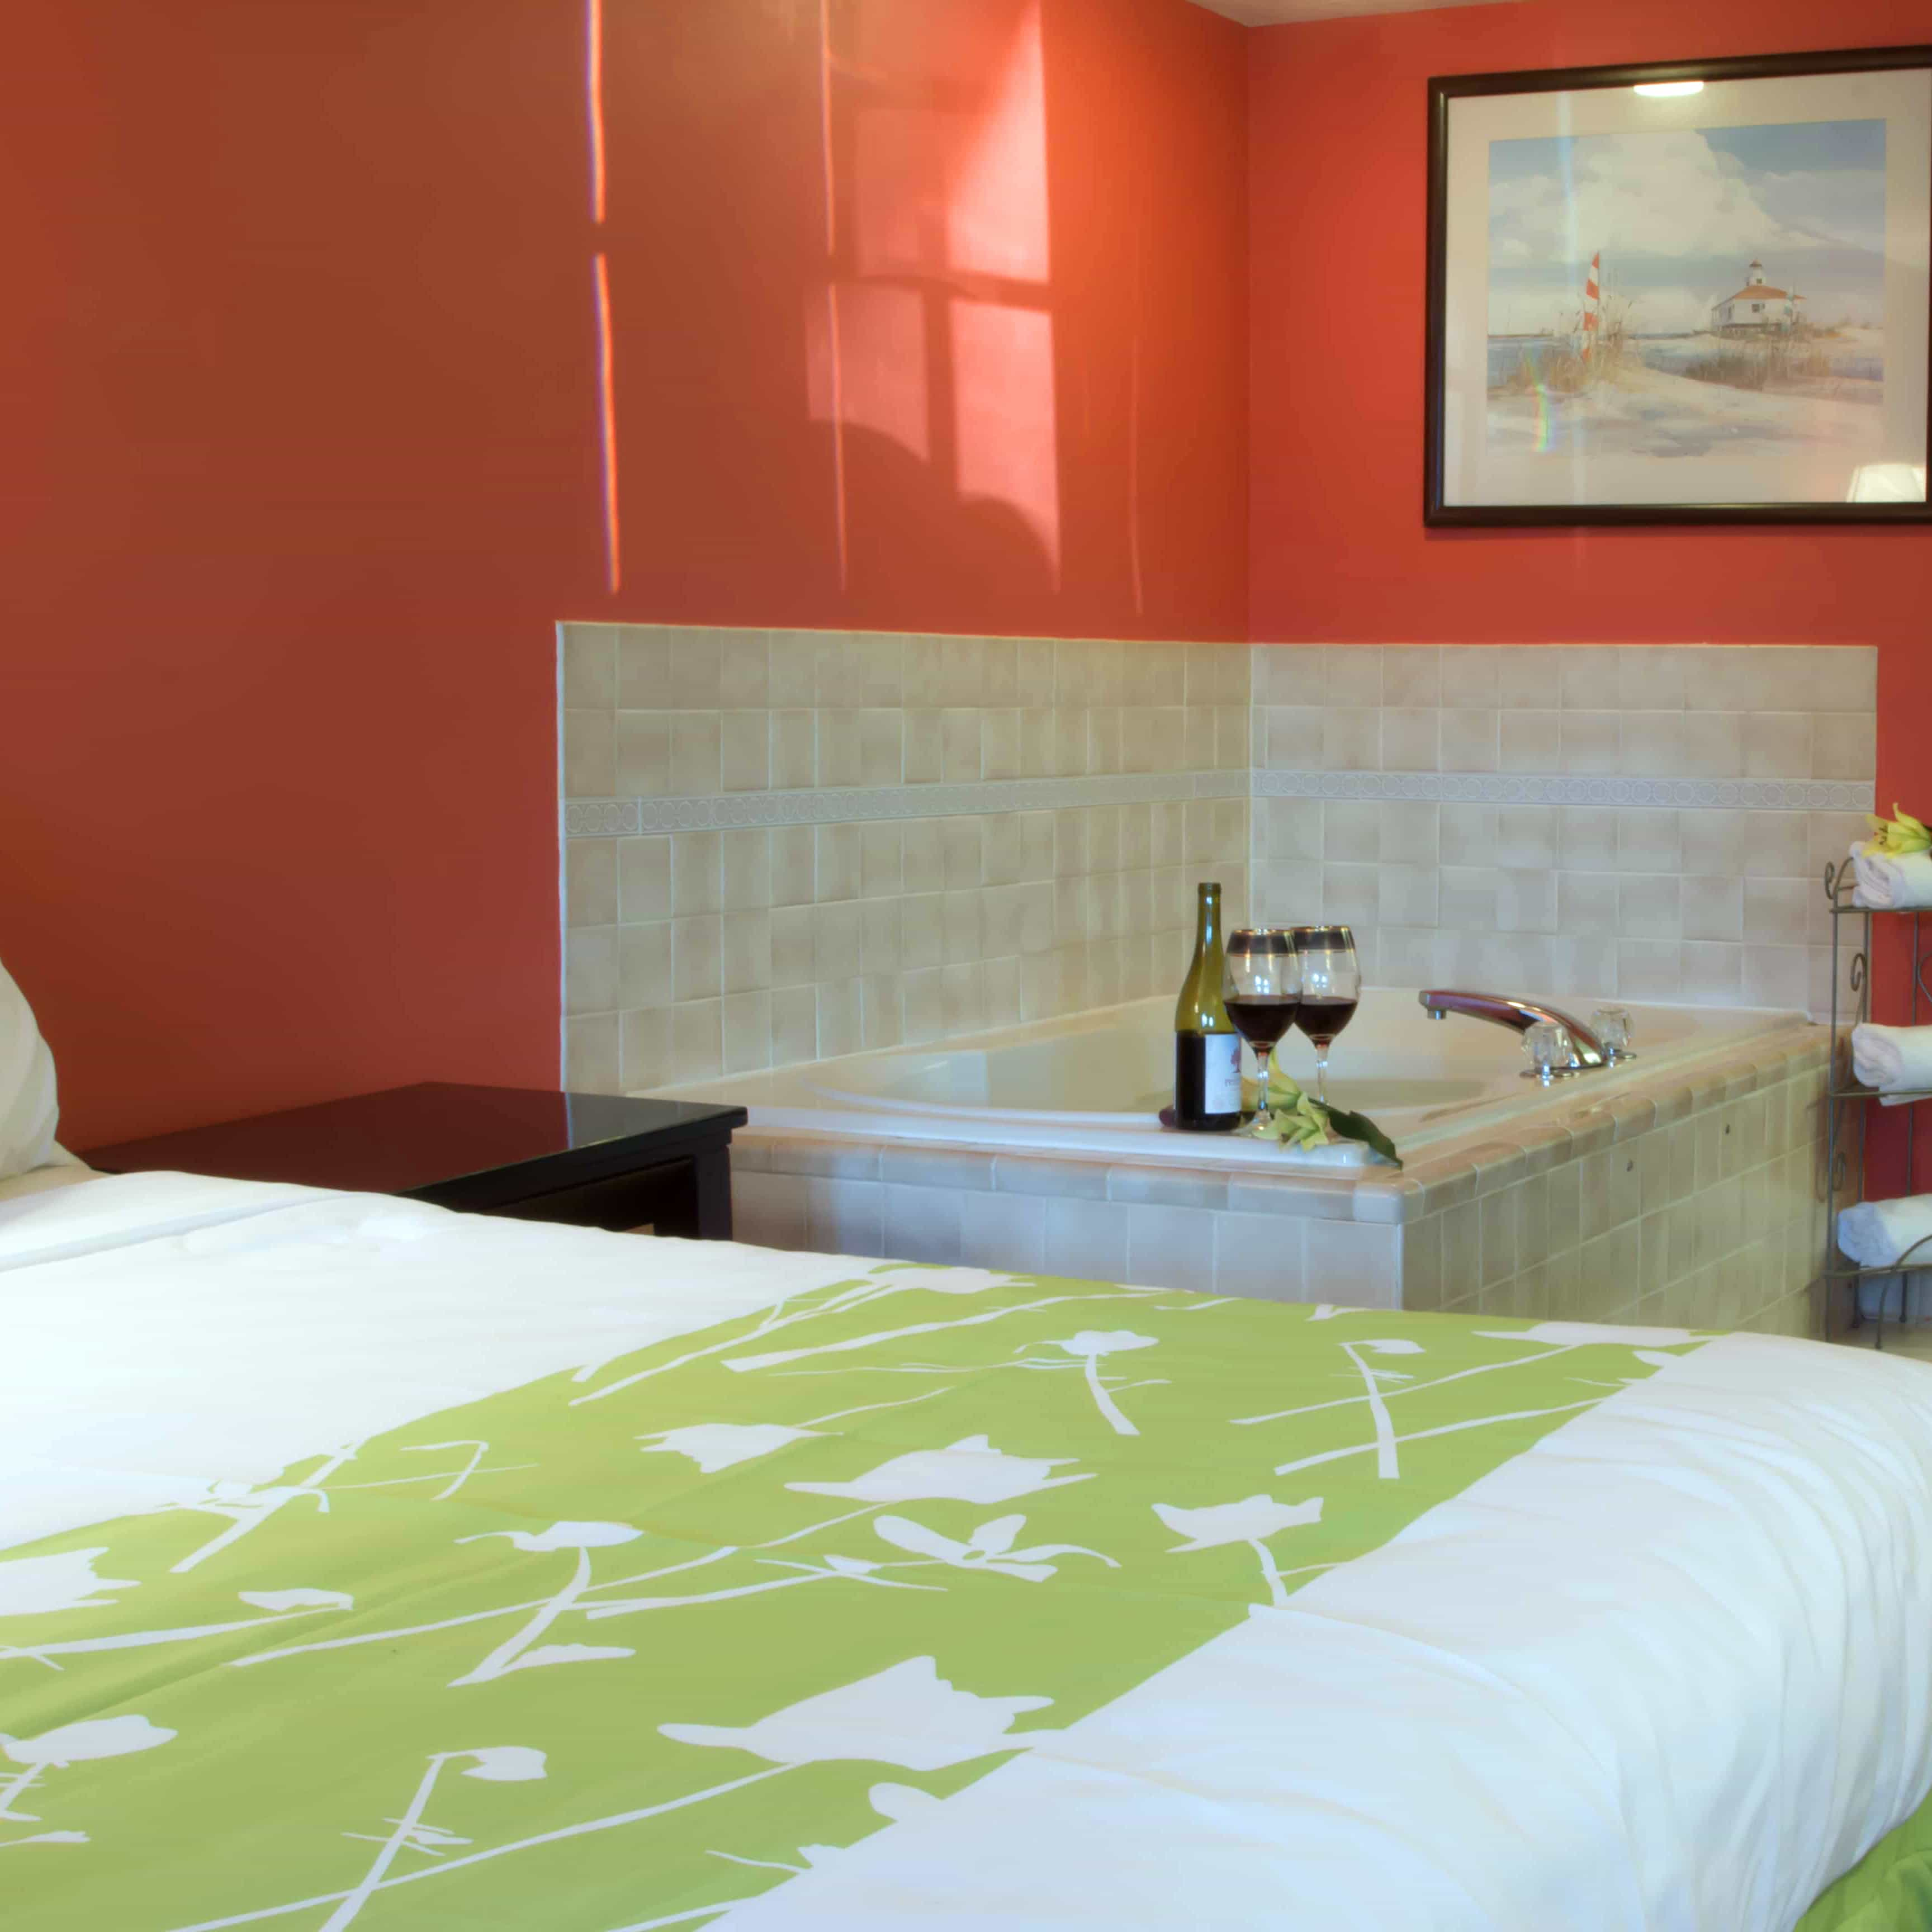 clarion guest room with wine and glasses